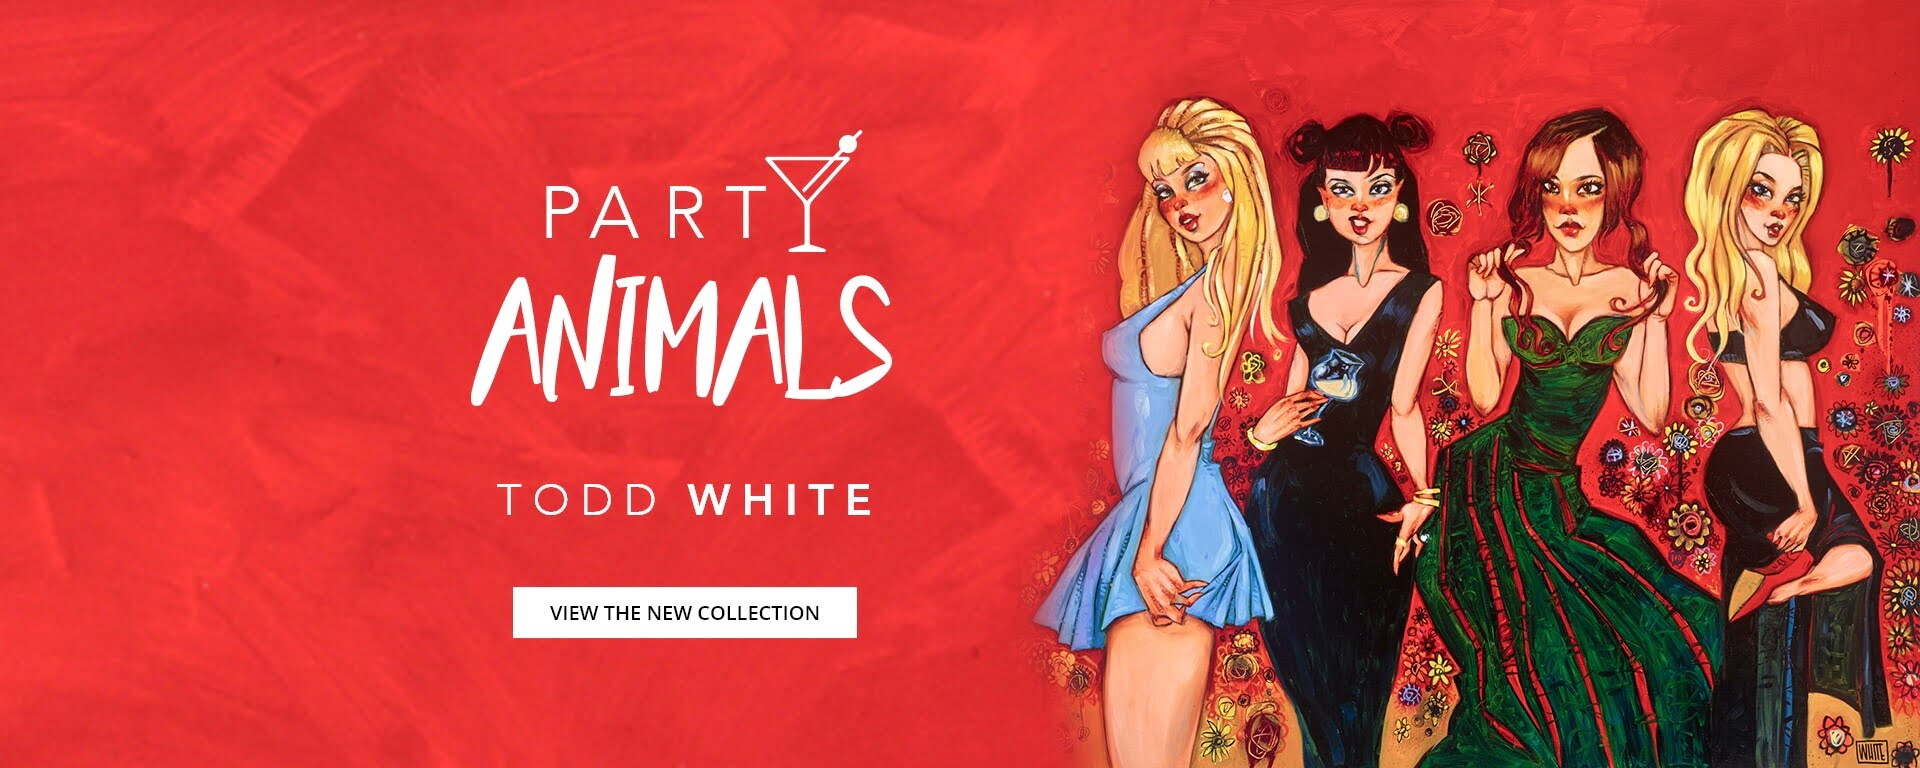 Party Animals – the latest collection by Todd White